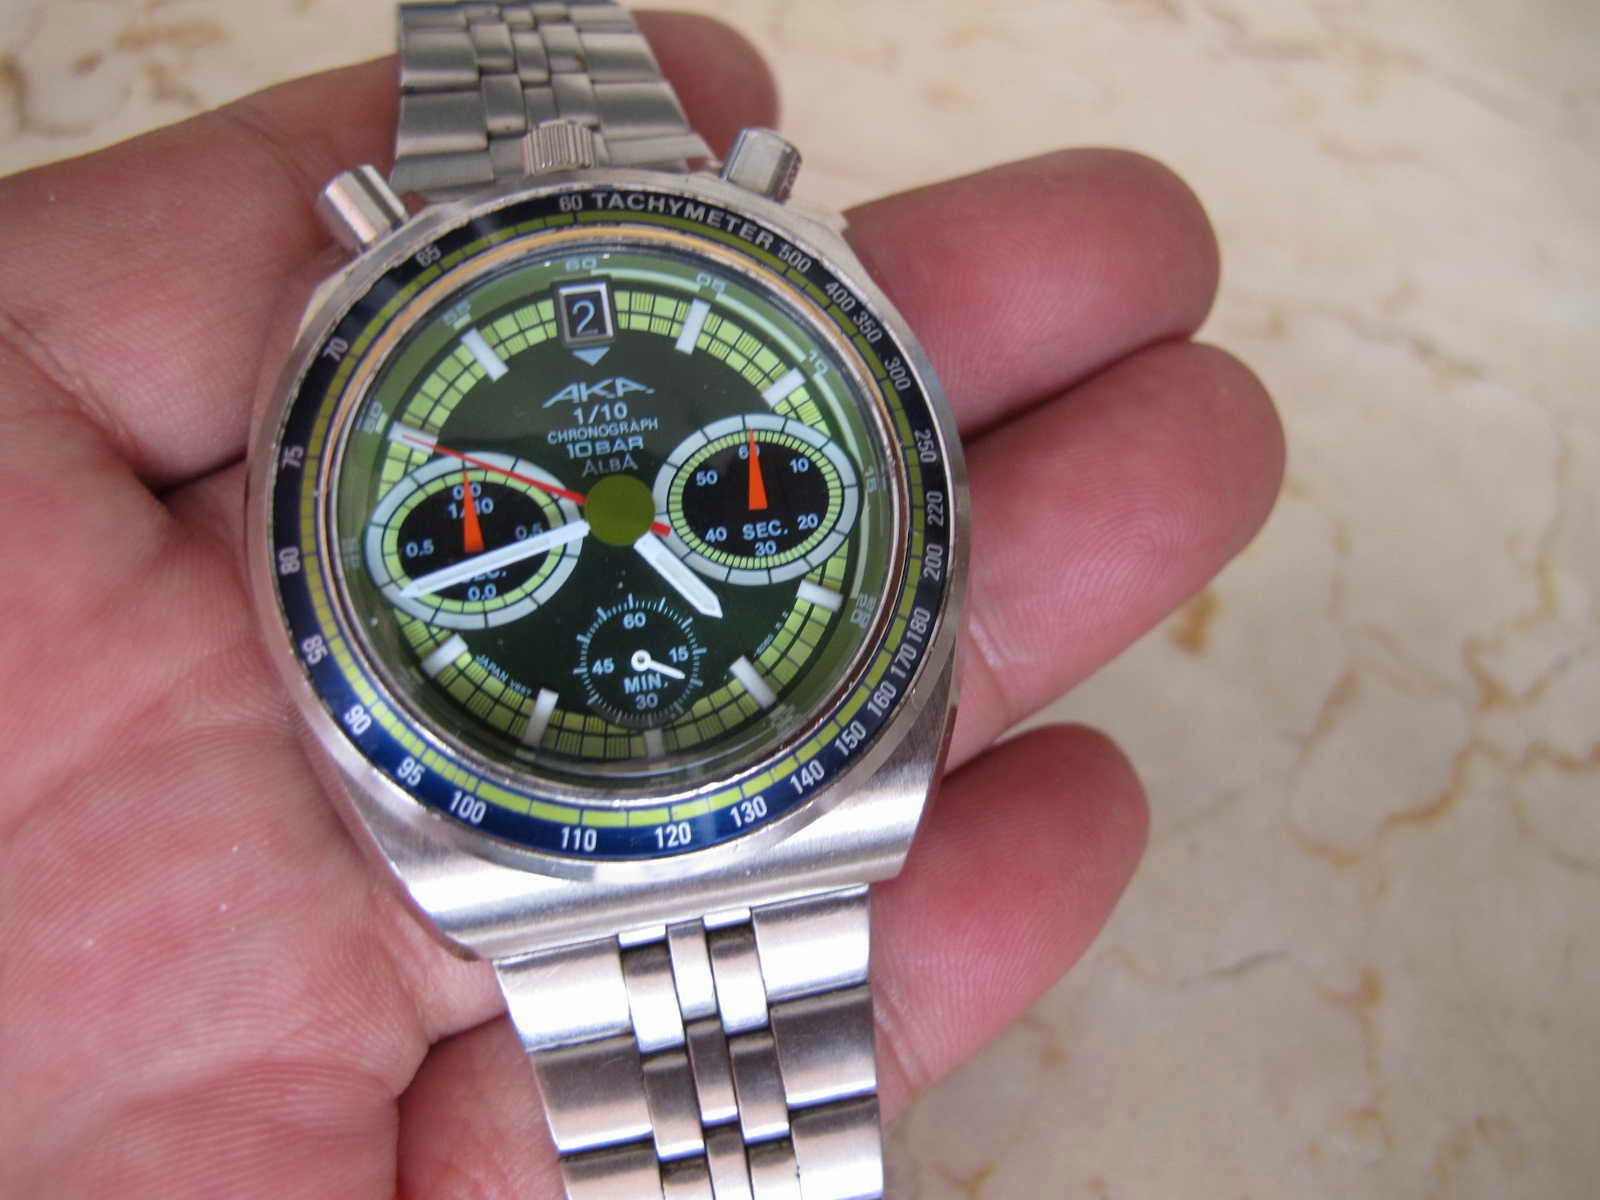 Maximuswatches Jual Beli Jam Tangan Second Baru Original